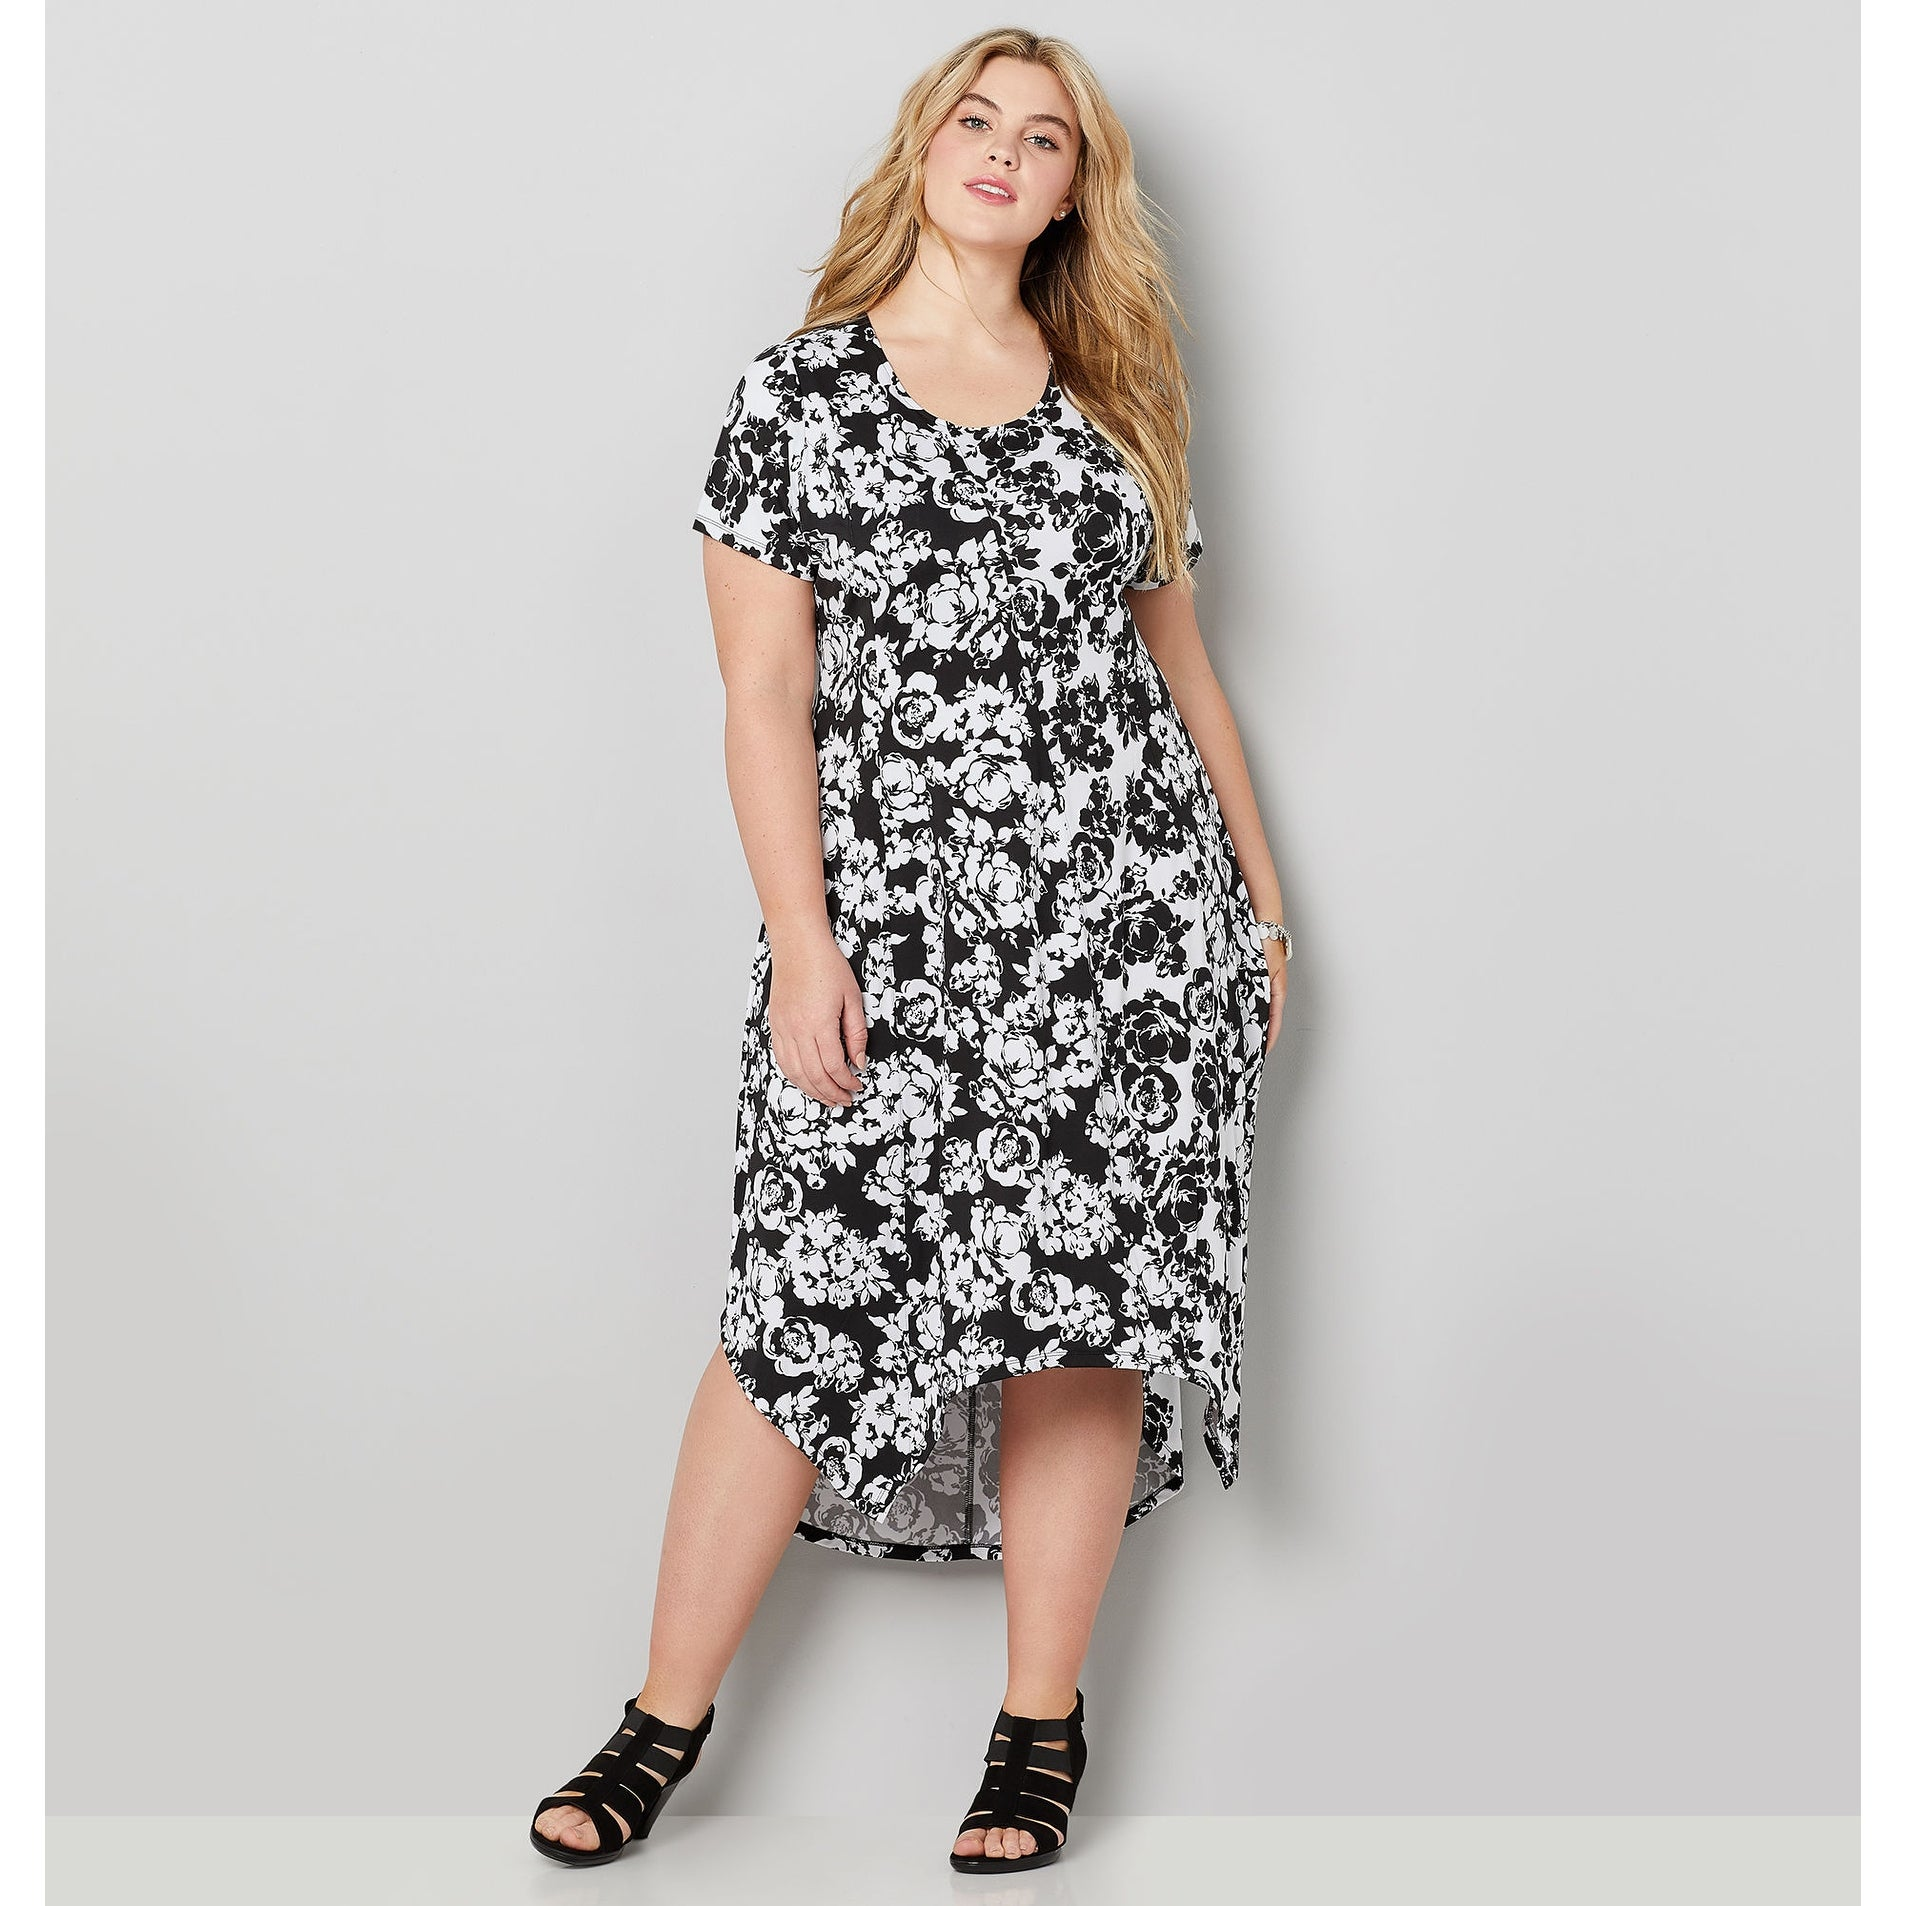 Plus Size Cute Maxi Dresses – DACC